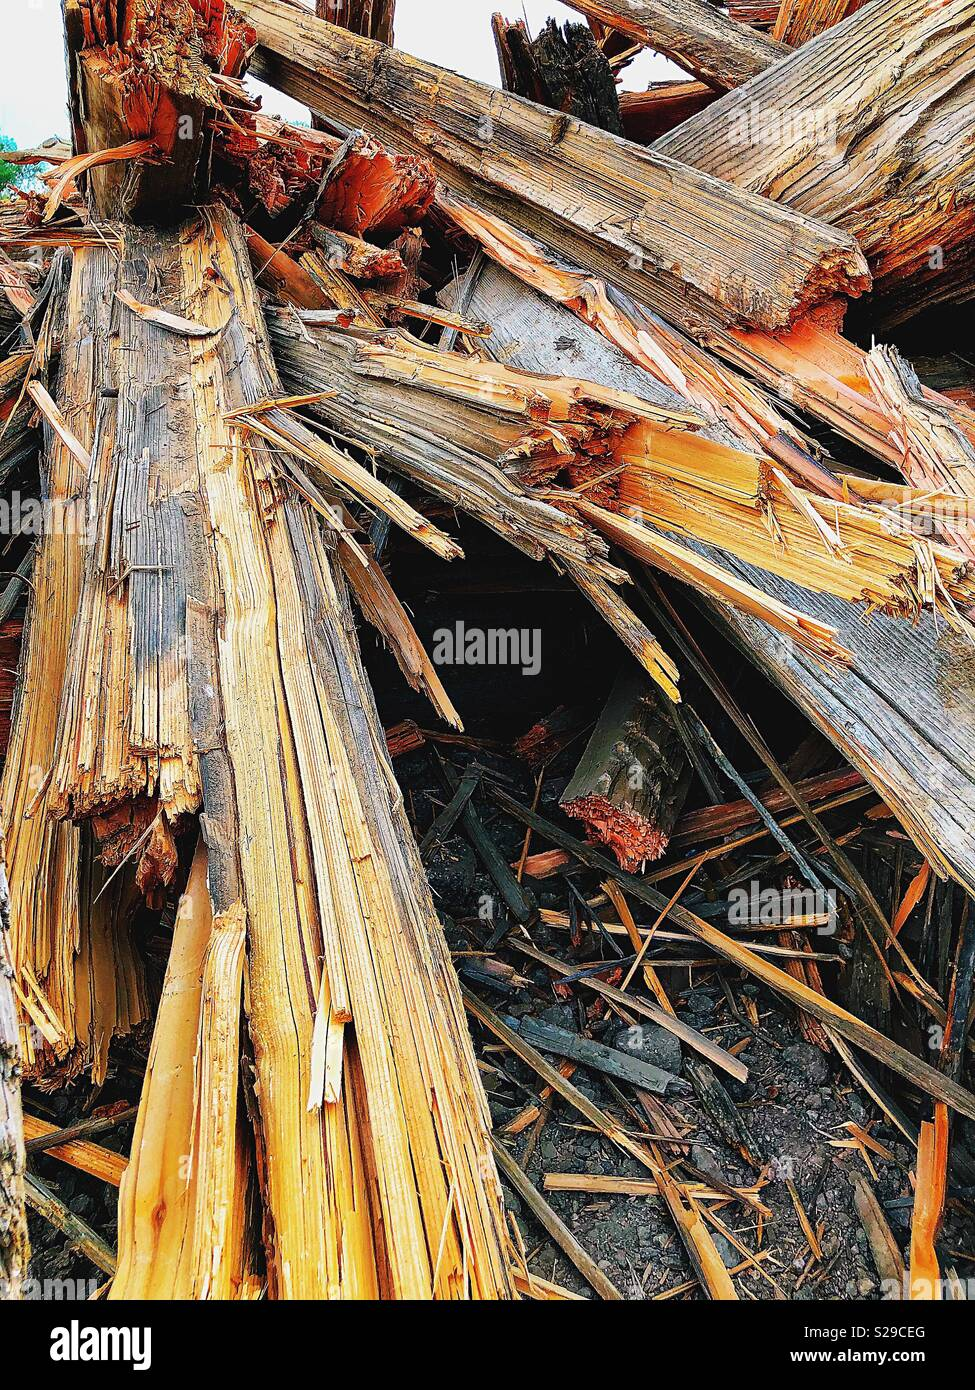 Piled broken wooden timbers - Stock Image